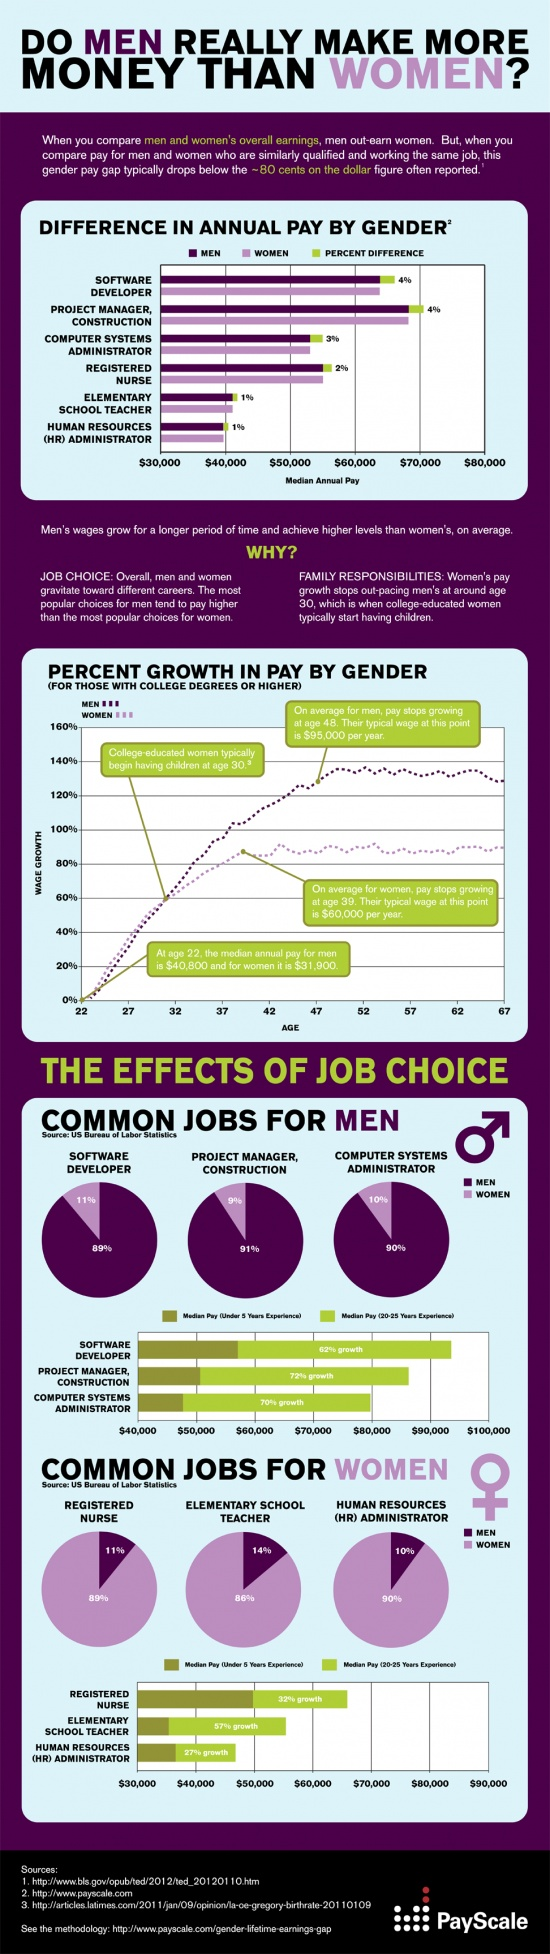 Do Men Really Earn More Than Women? Yes, men do earn more than women on average, but not that much more when they work the same job and they have similar experience and abilities. Take a look at what PayScale has discovered about the gender pay gap. #infographic